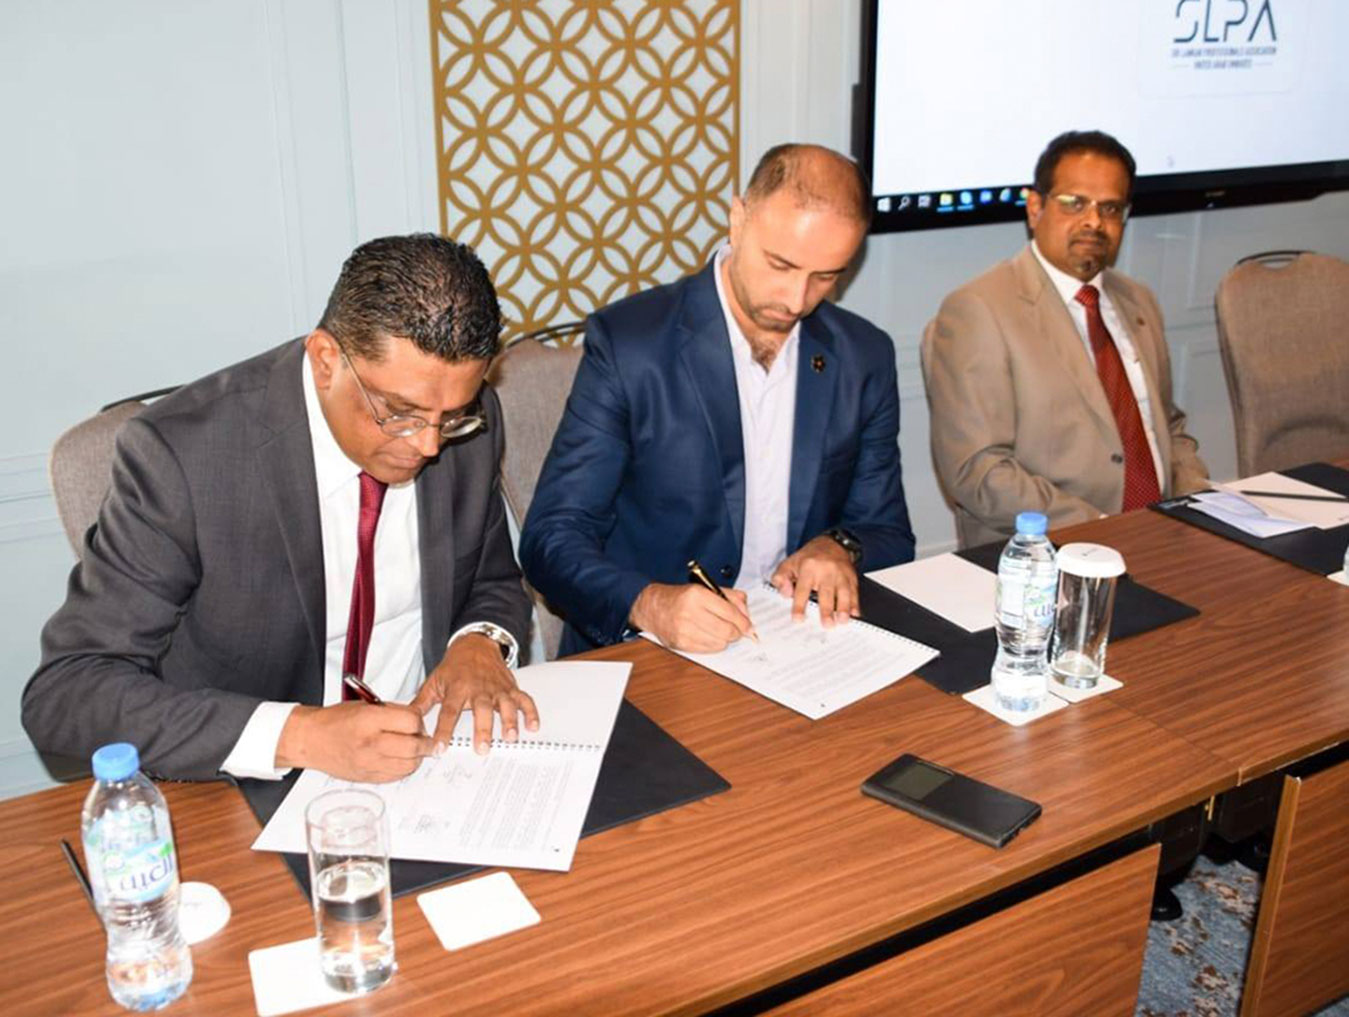 Signing the association management services agreement between SLPA-UAE and MCI Middle East LLC on 18 June 2019 at Radisson Blu Hotel,Dubai,UAE